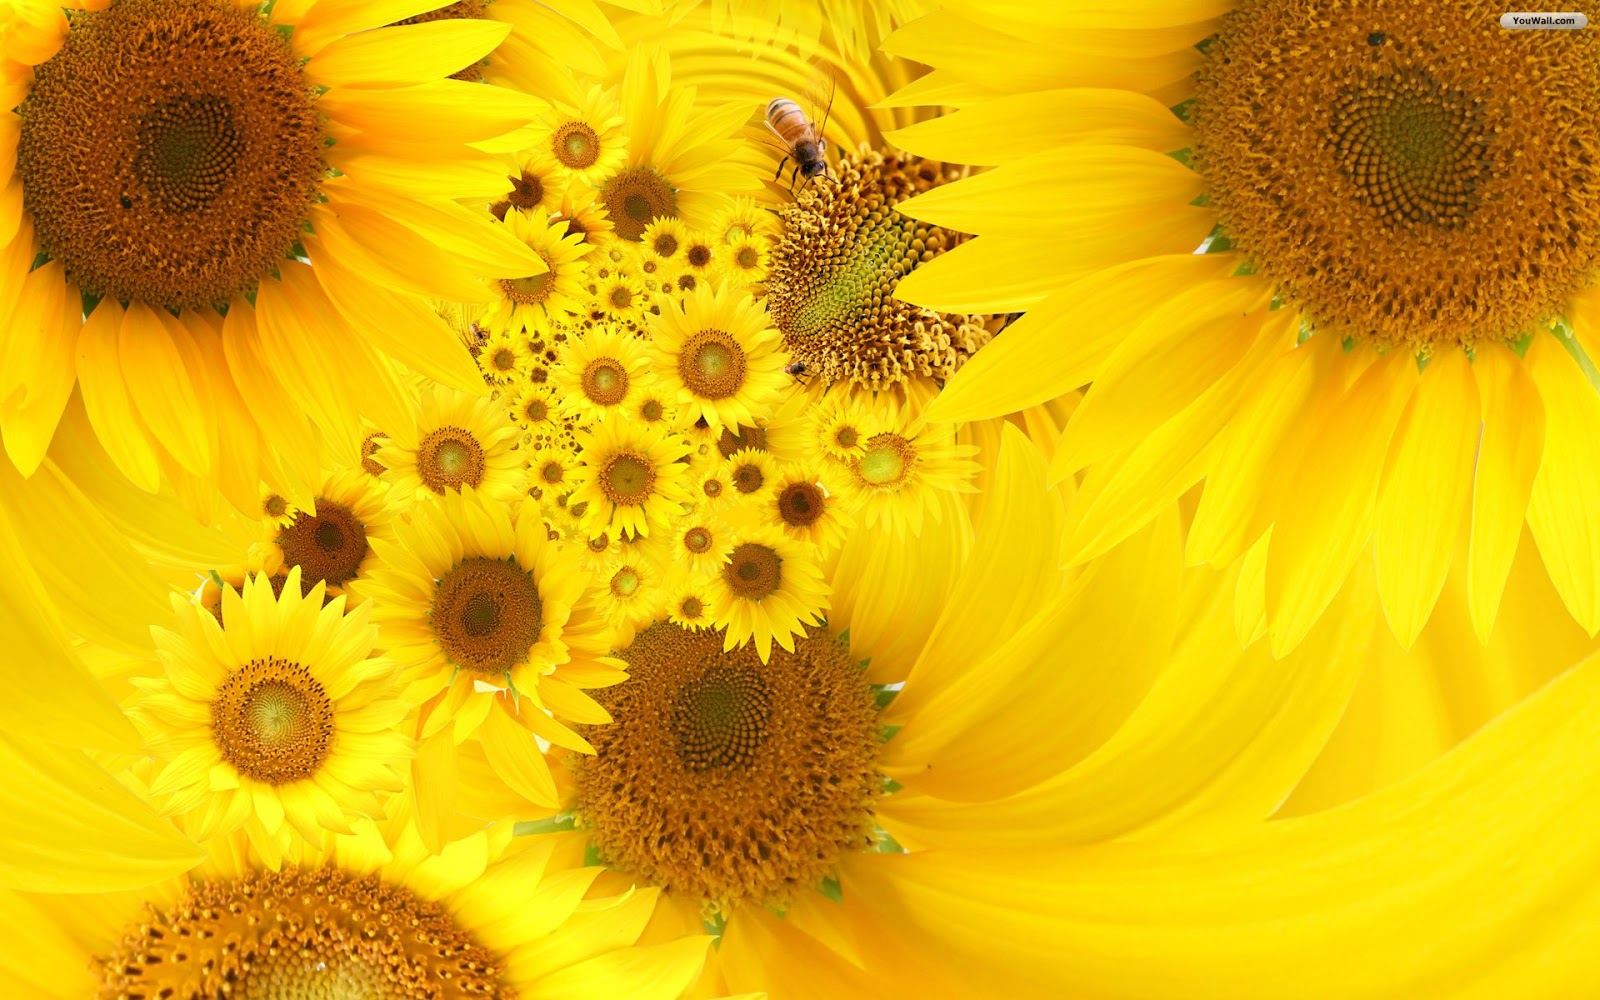 Sunflower Background - Mobile wallpapers